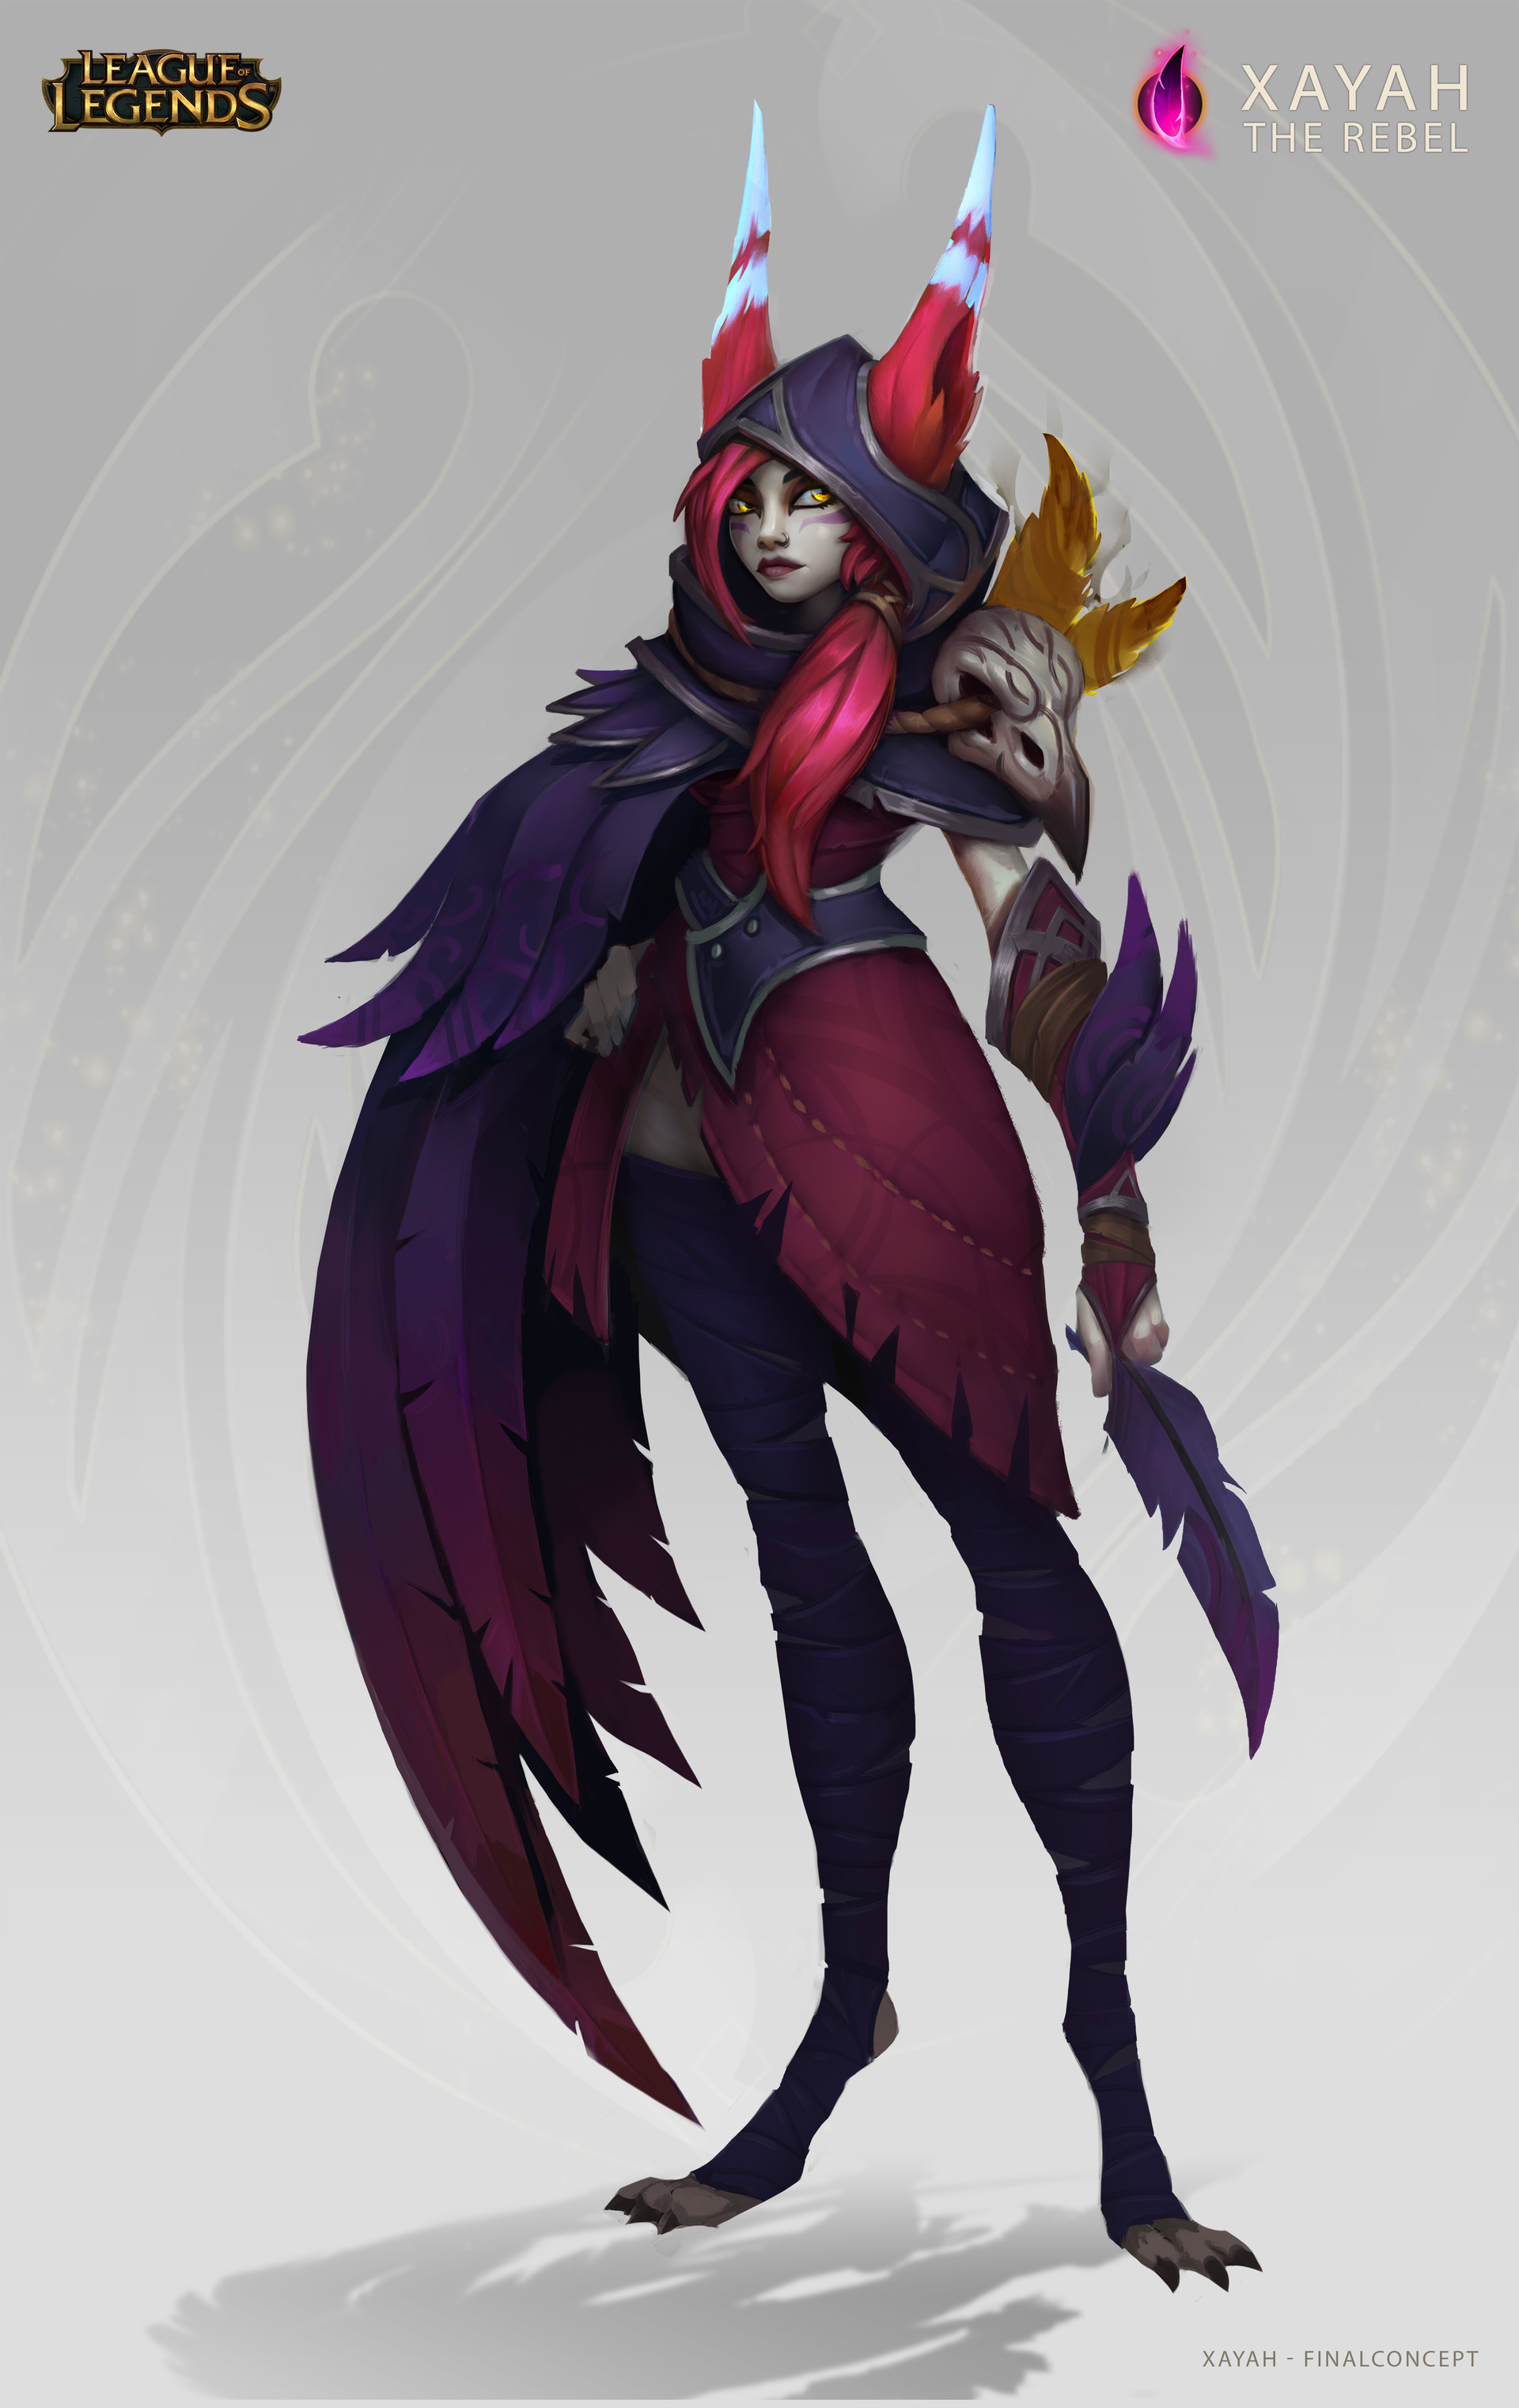 Final color/design concept for Xayah